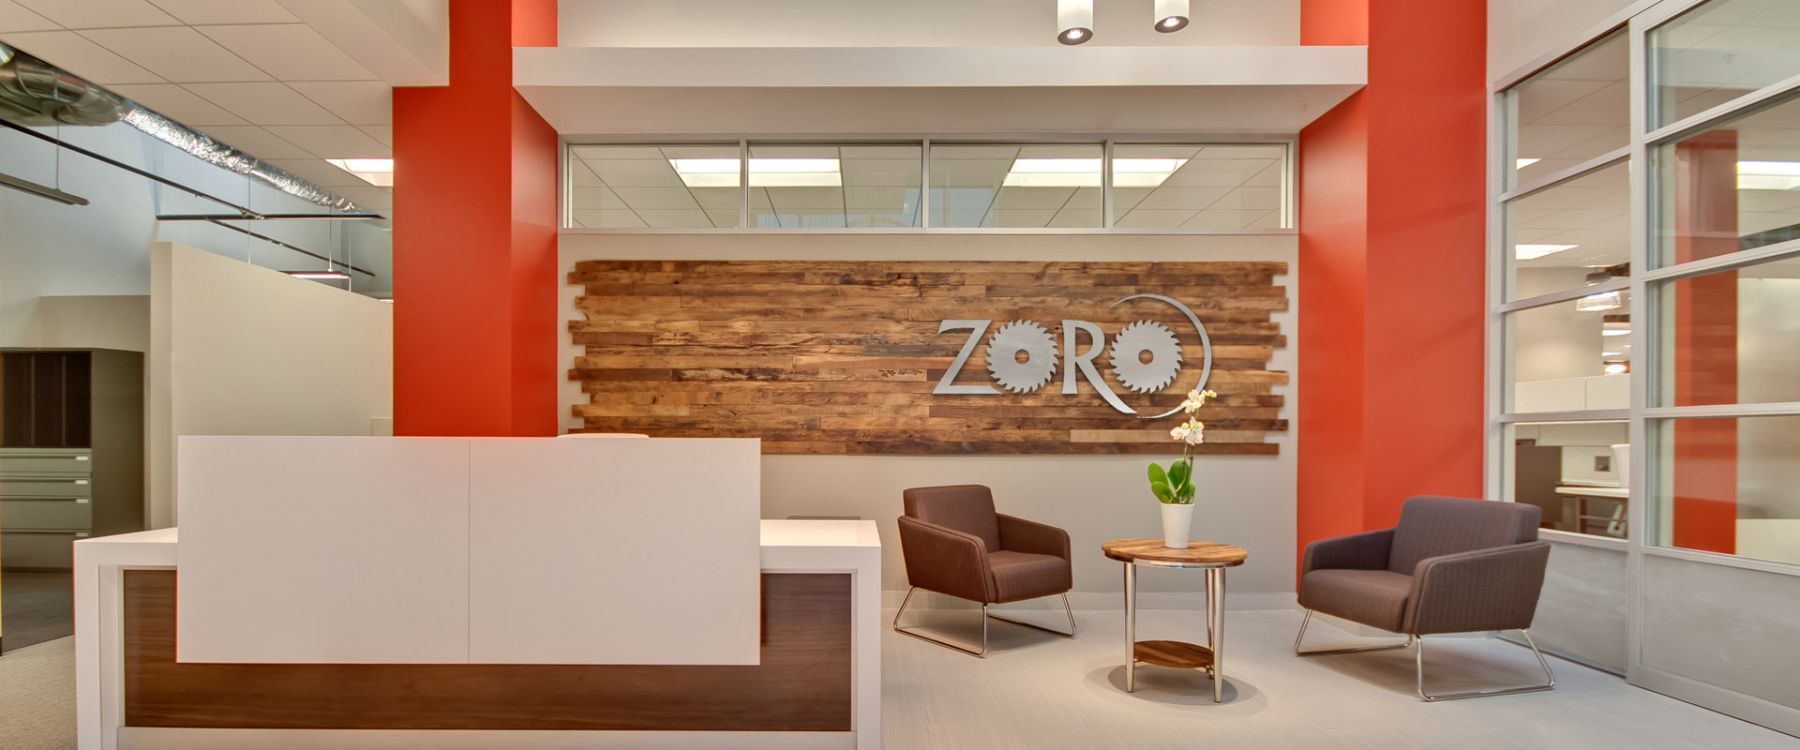 Zoro 1 – Reception